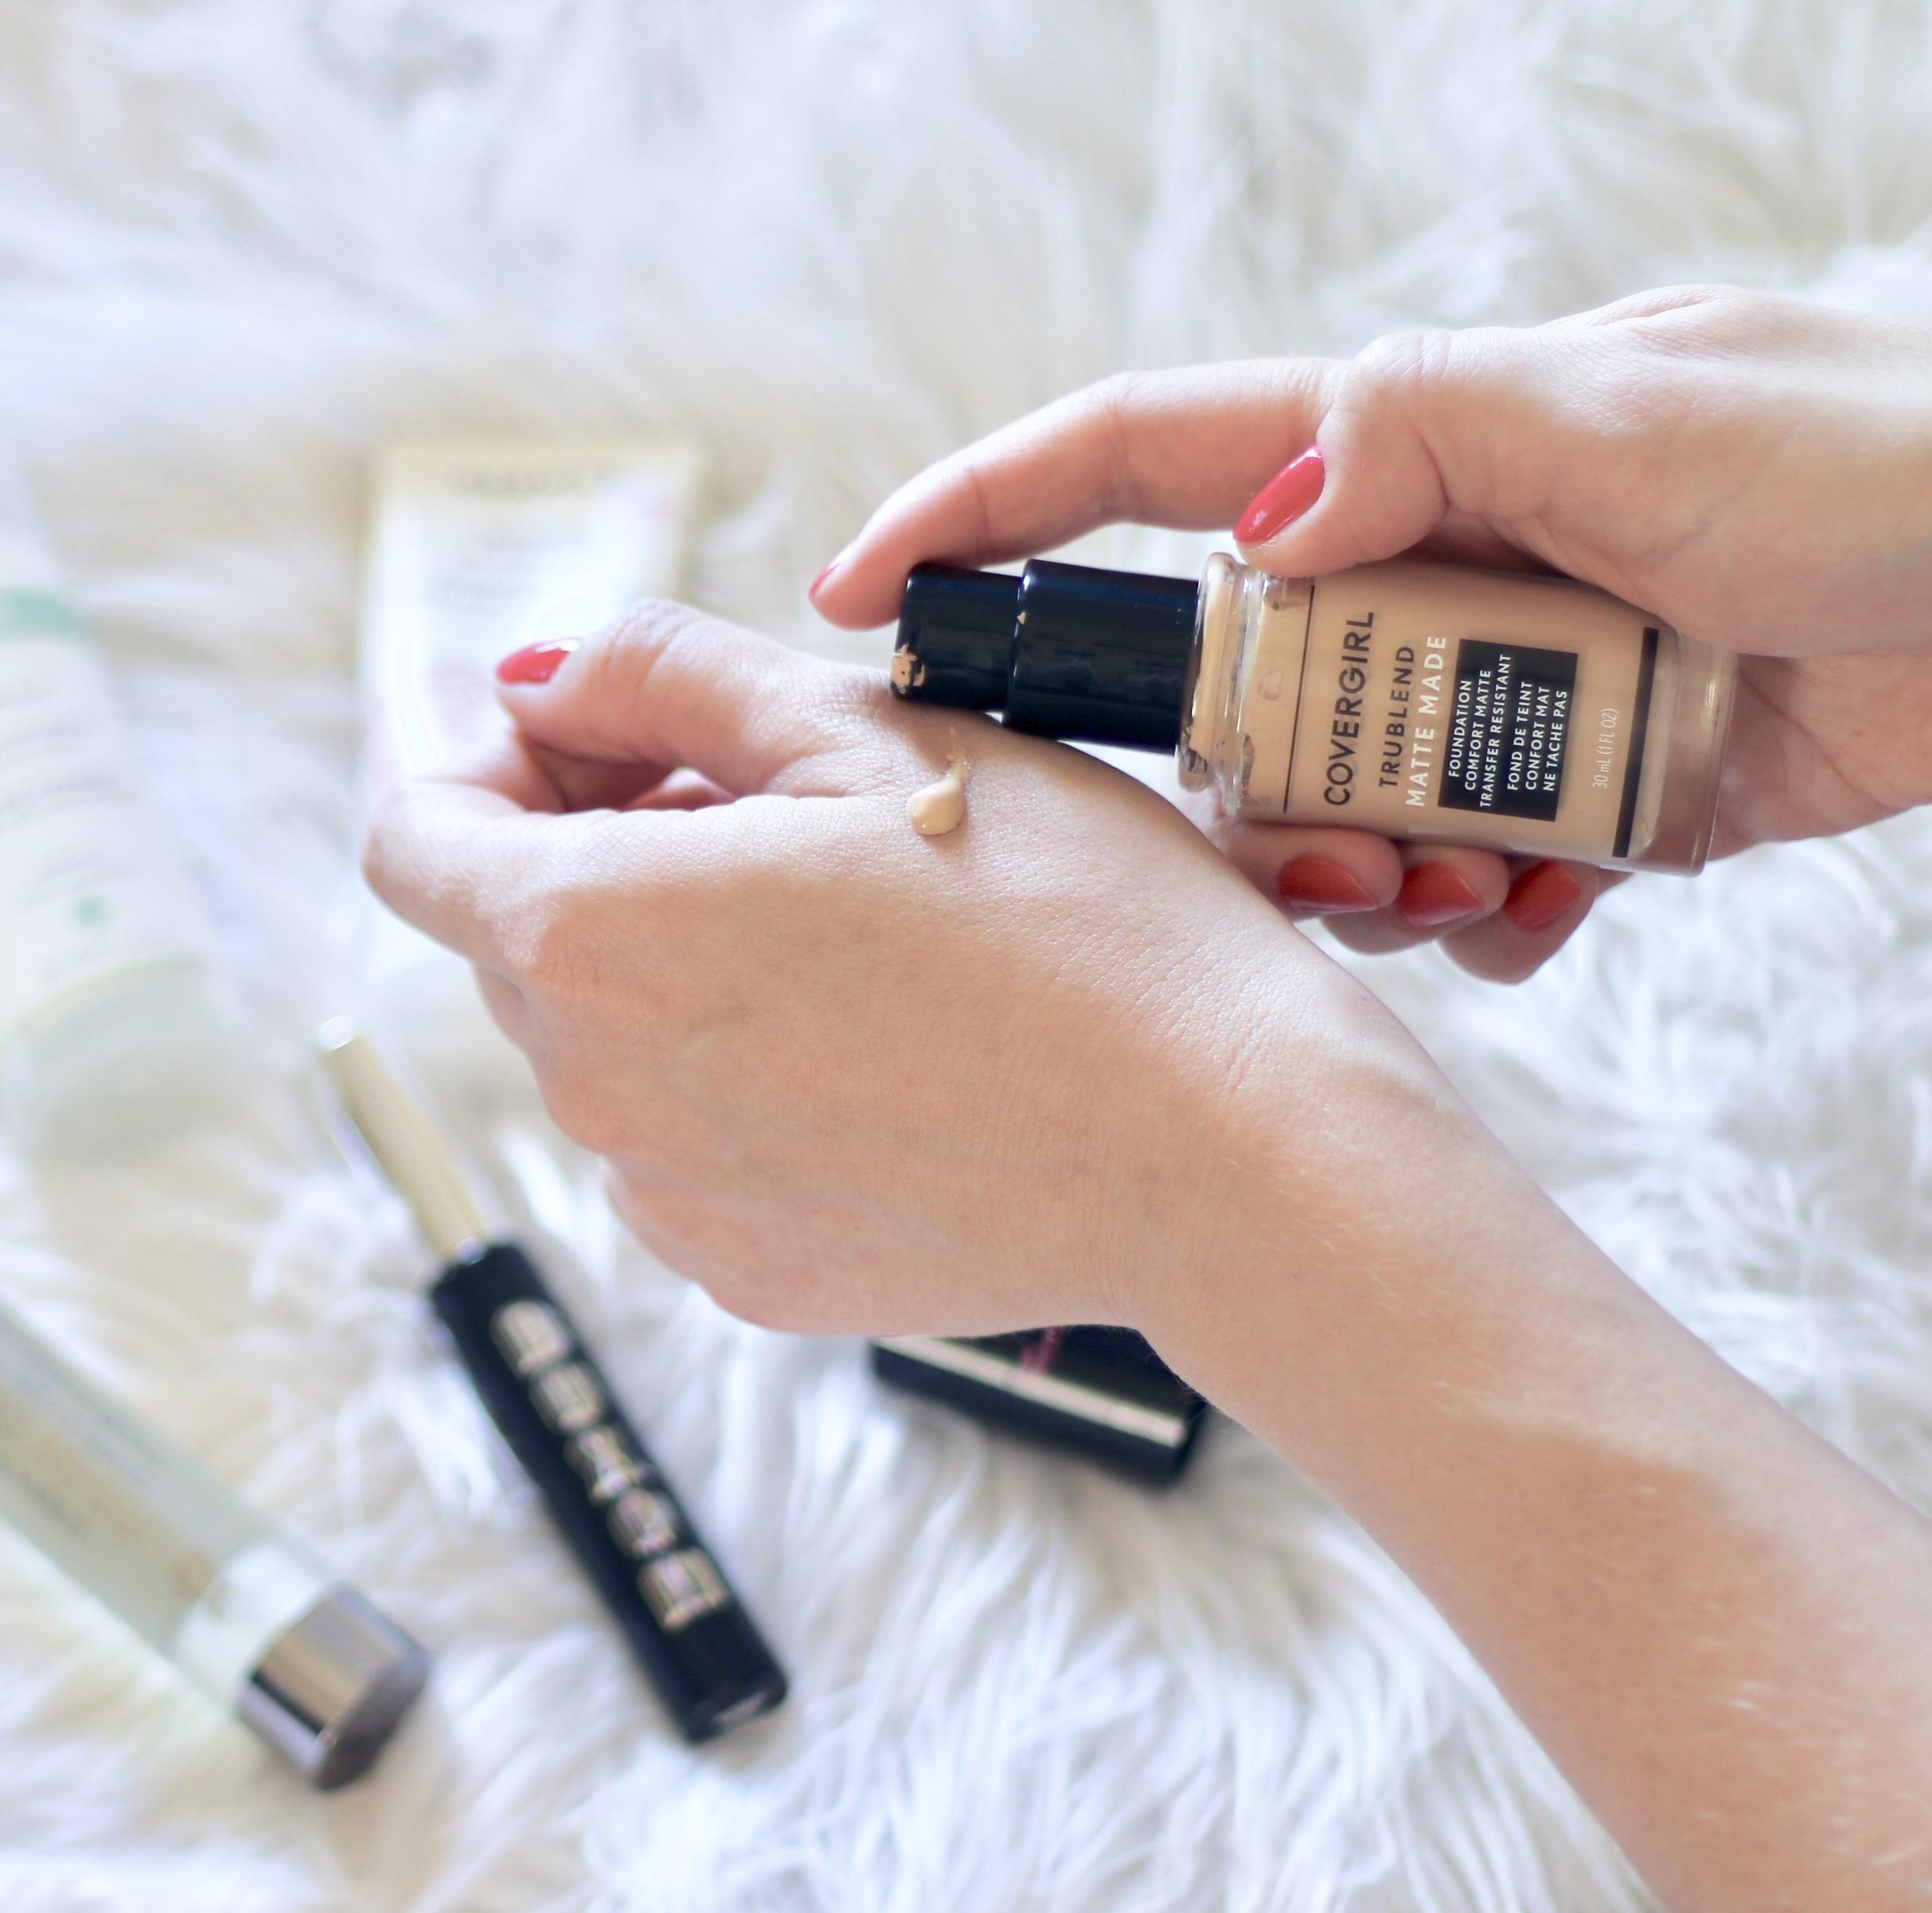 covergirl true matte foundation review #covergirl #covergirlmade #foundation